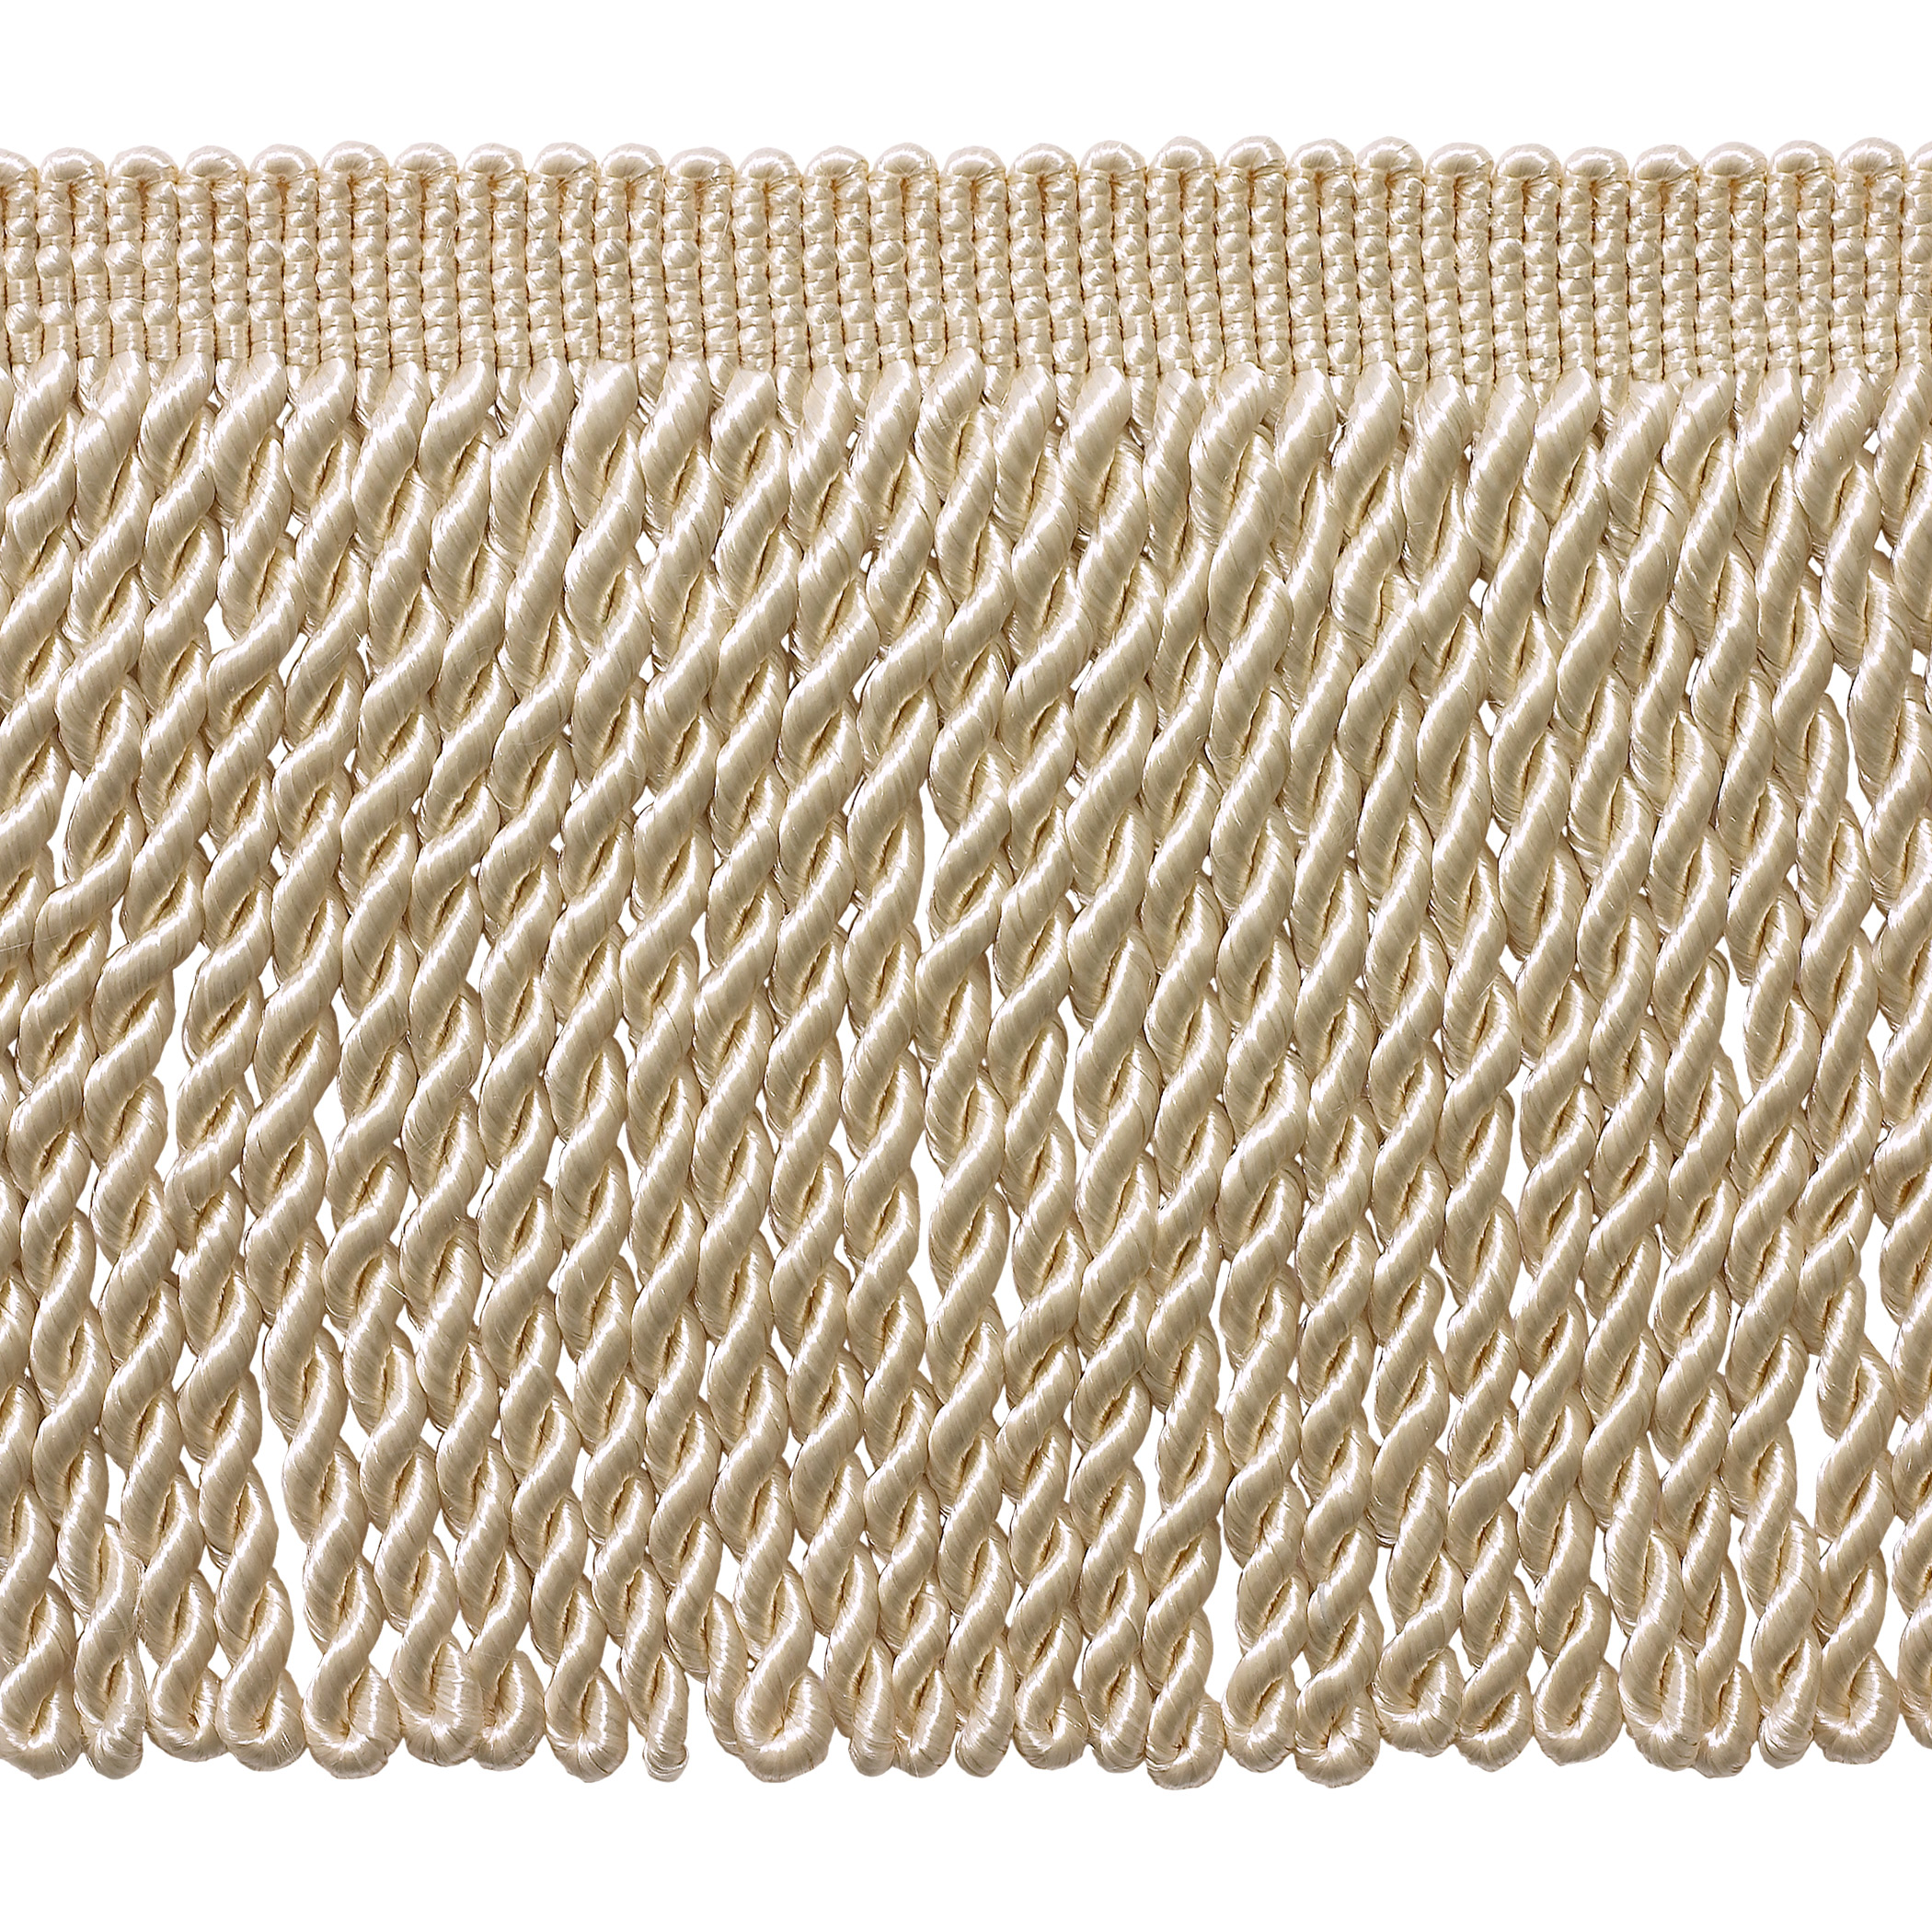 5 Yard Value Pack - 6 Inch Long Ivory / Ecru Bullion Fringe Trim, Basic Trim Collection, Style# BFS6 Color: A2 (15 Ft / 4.5 Meters)